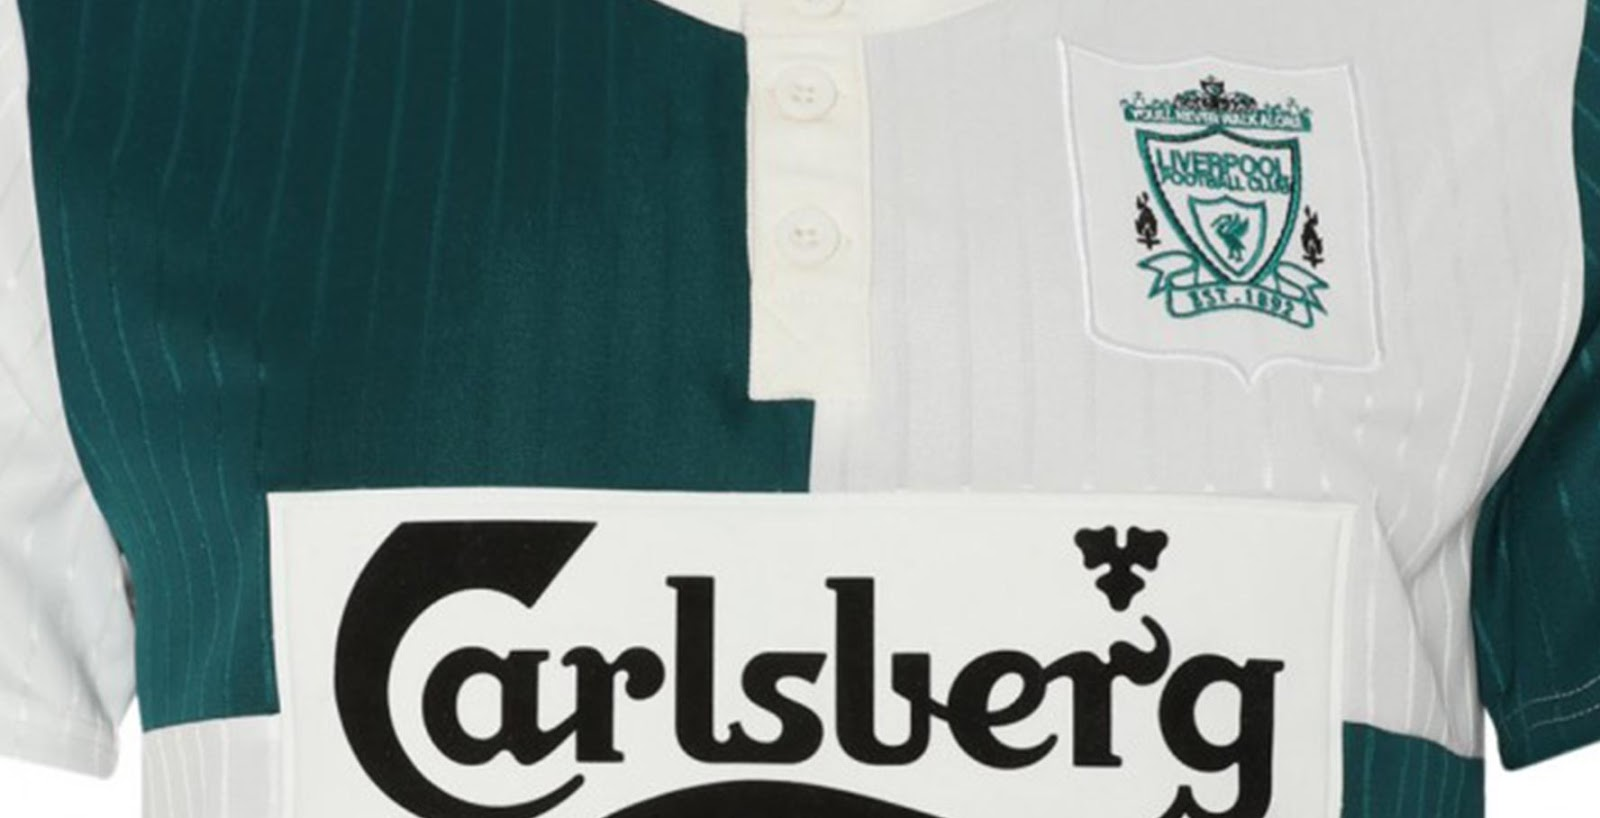 low priced 2c3ae 23339 Liverpool 1995-96 Retro Away Kit Released - Footy Headlines